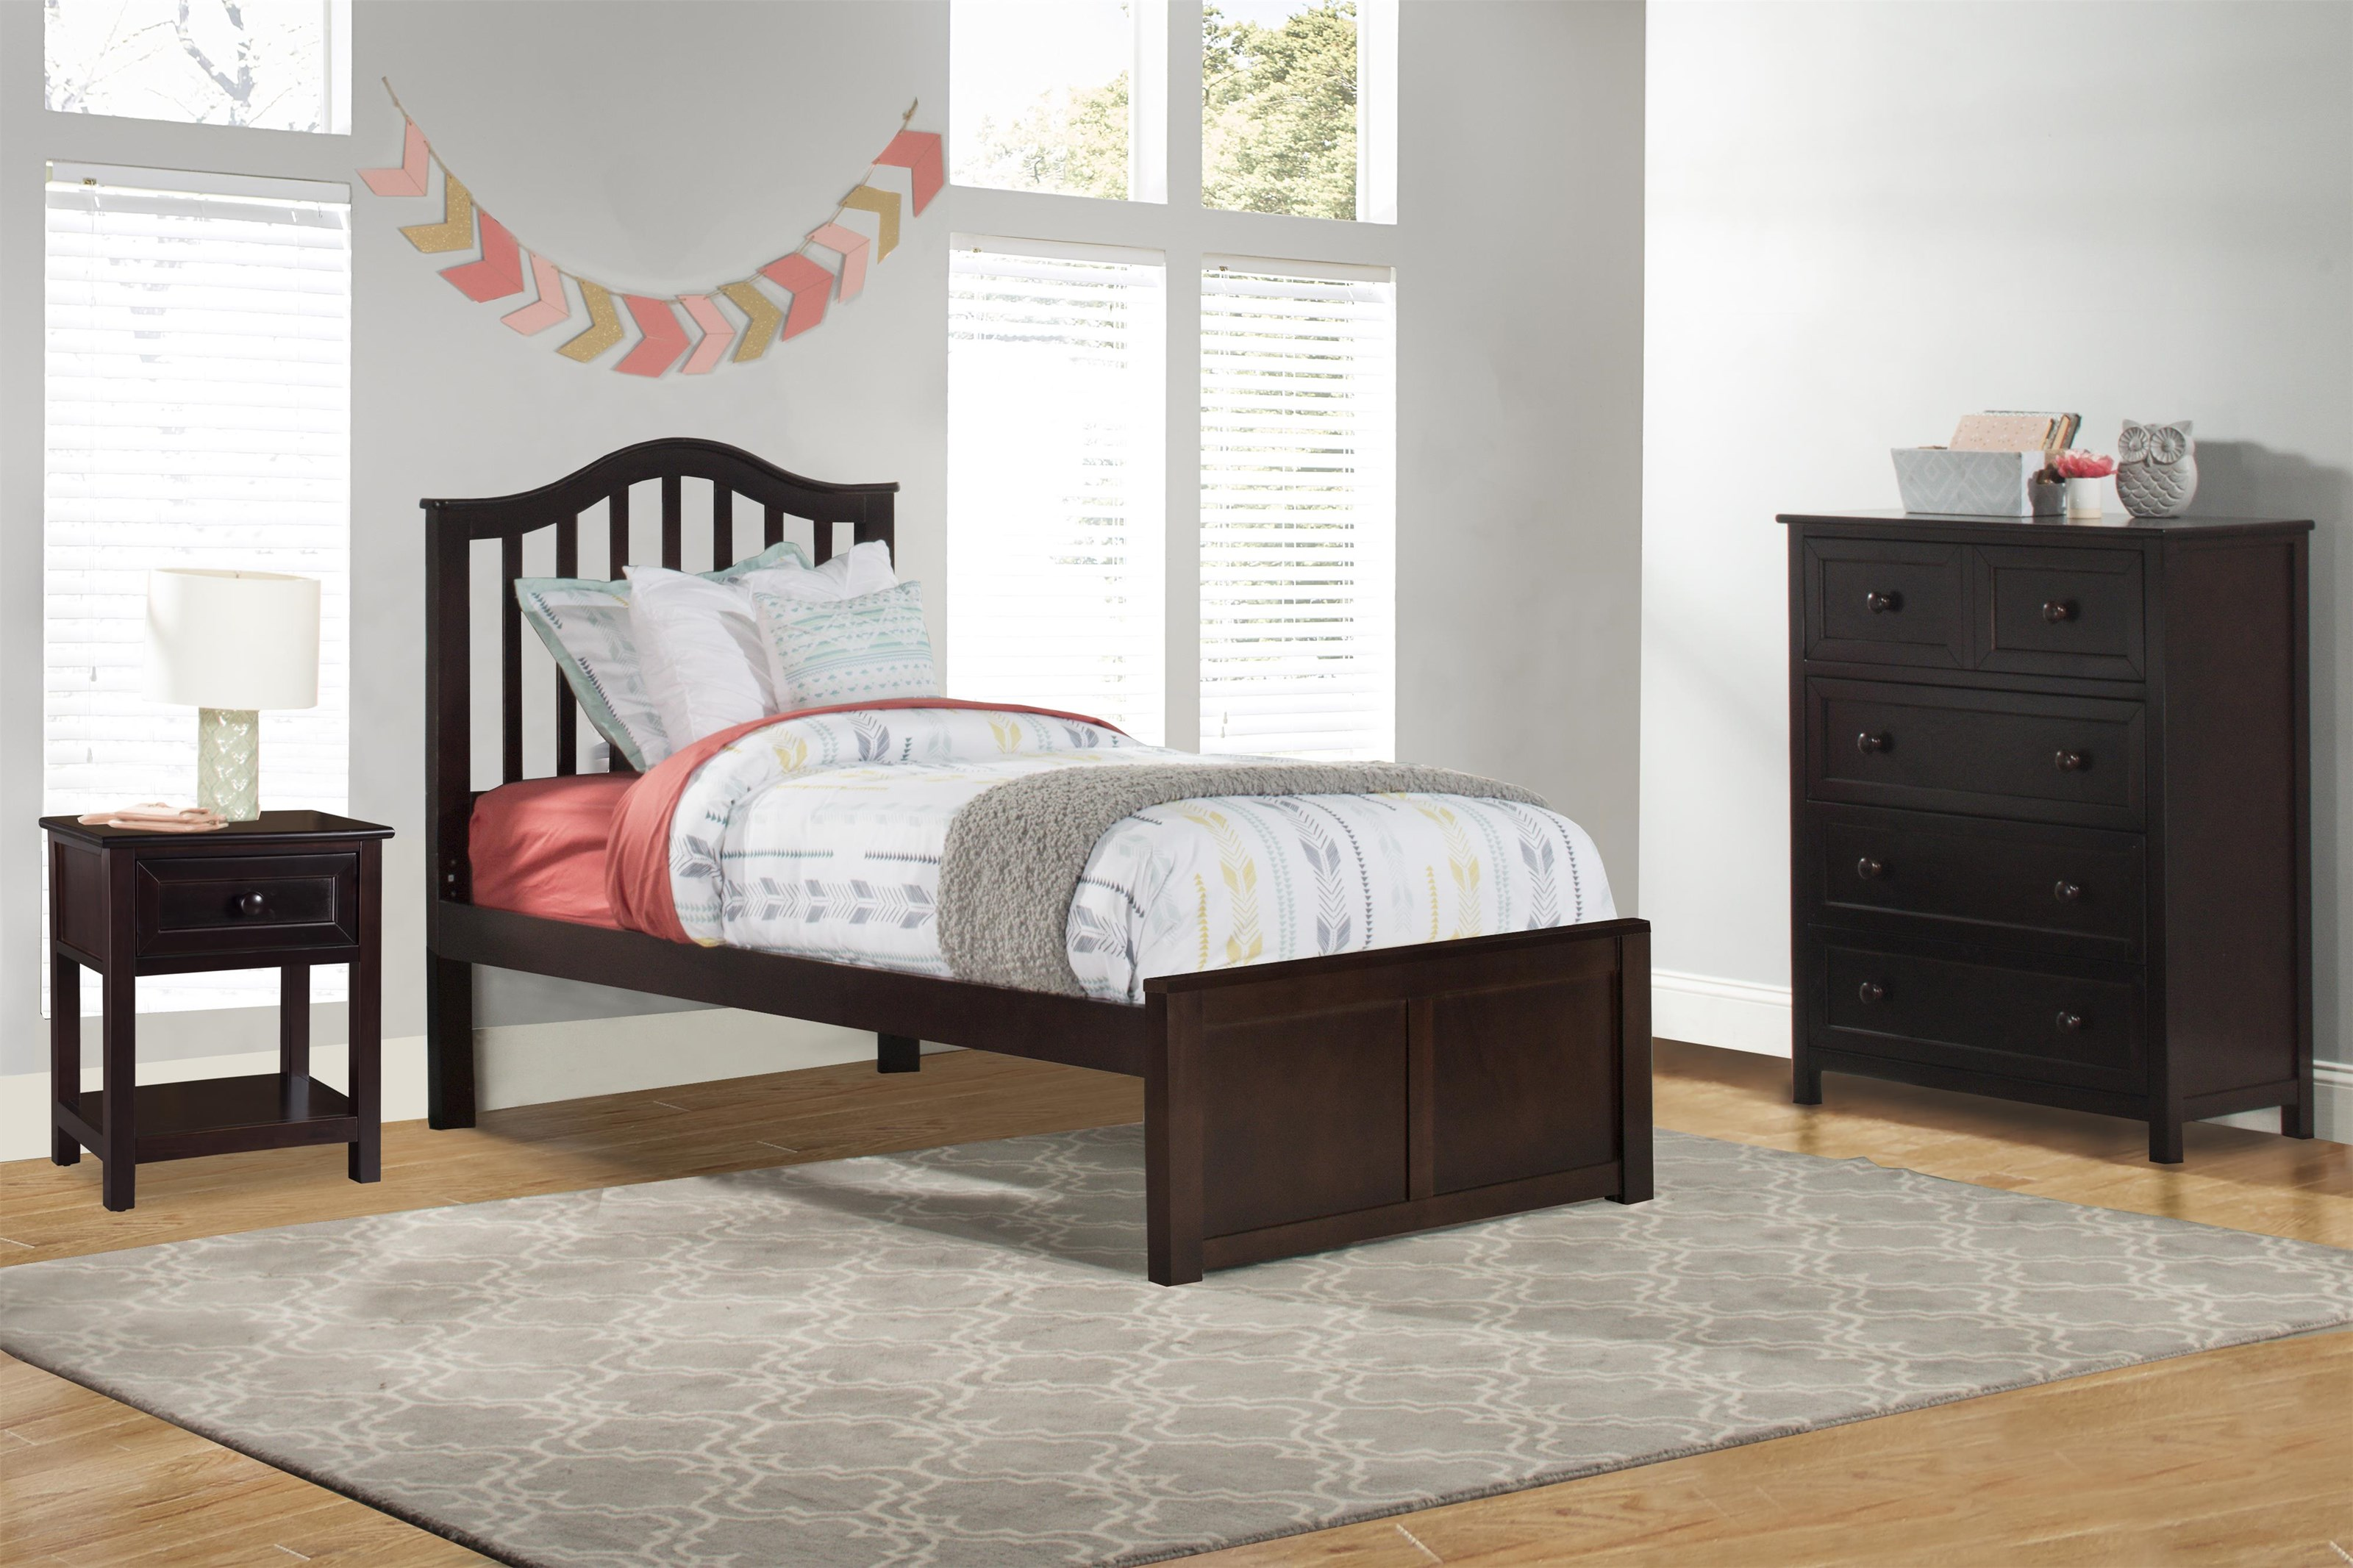 Schoolhouse 4.0 Youth Twin Bed at Ruby Gordon Home